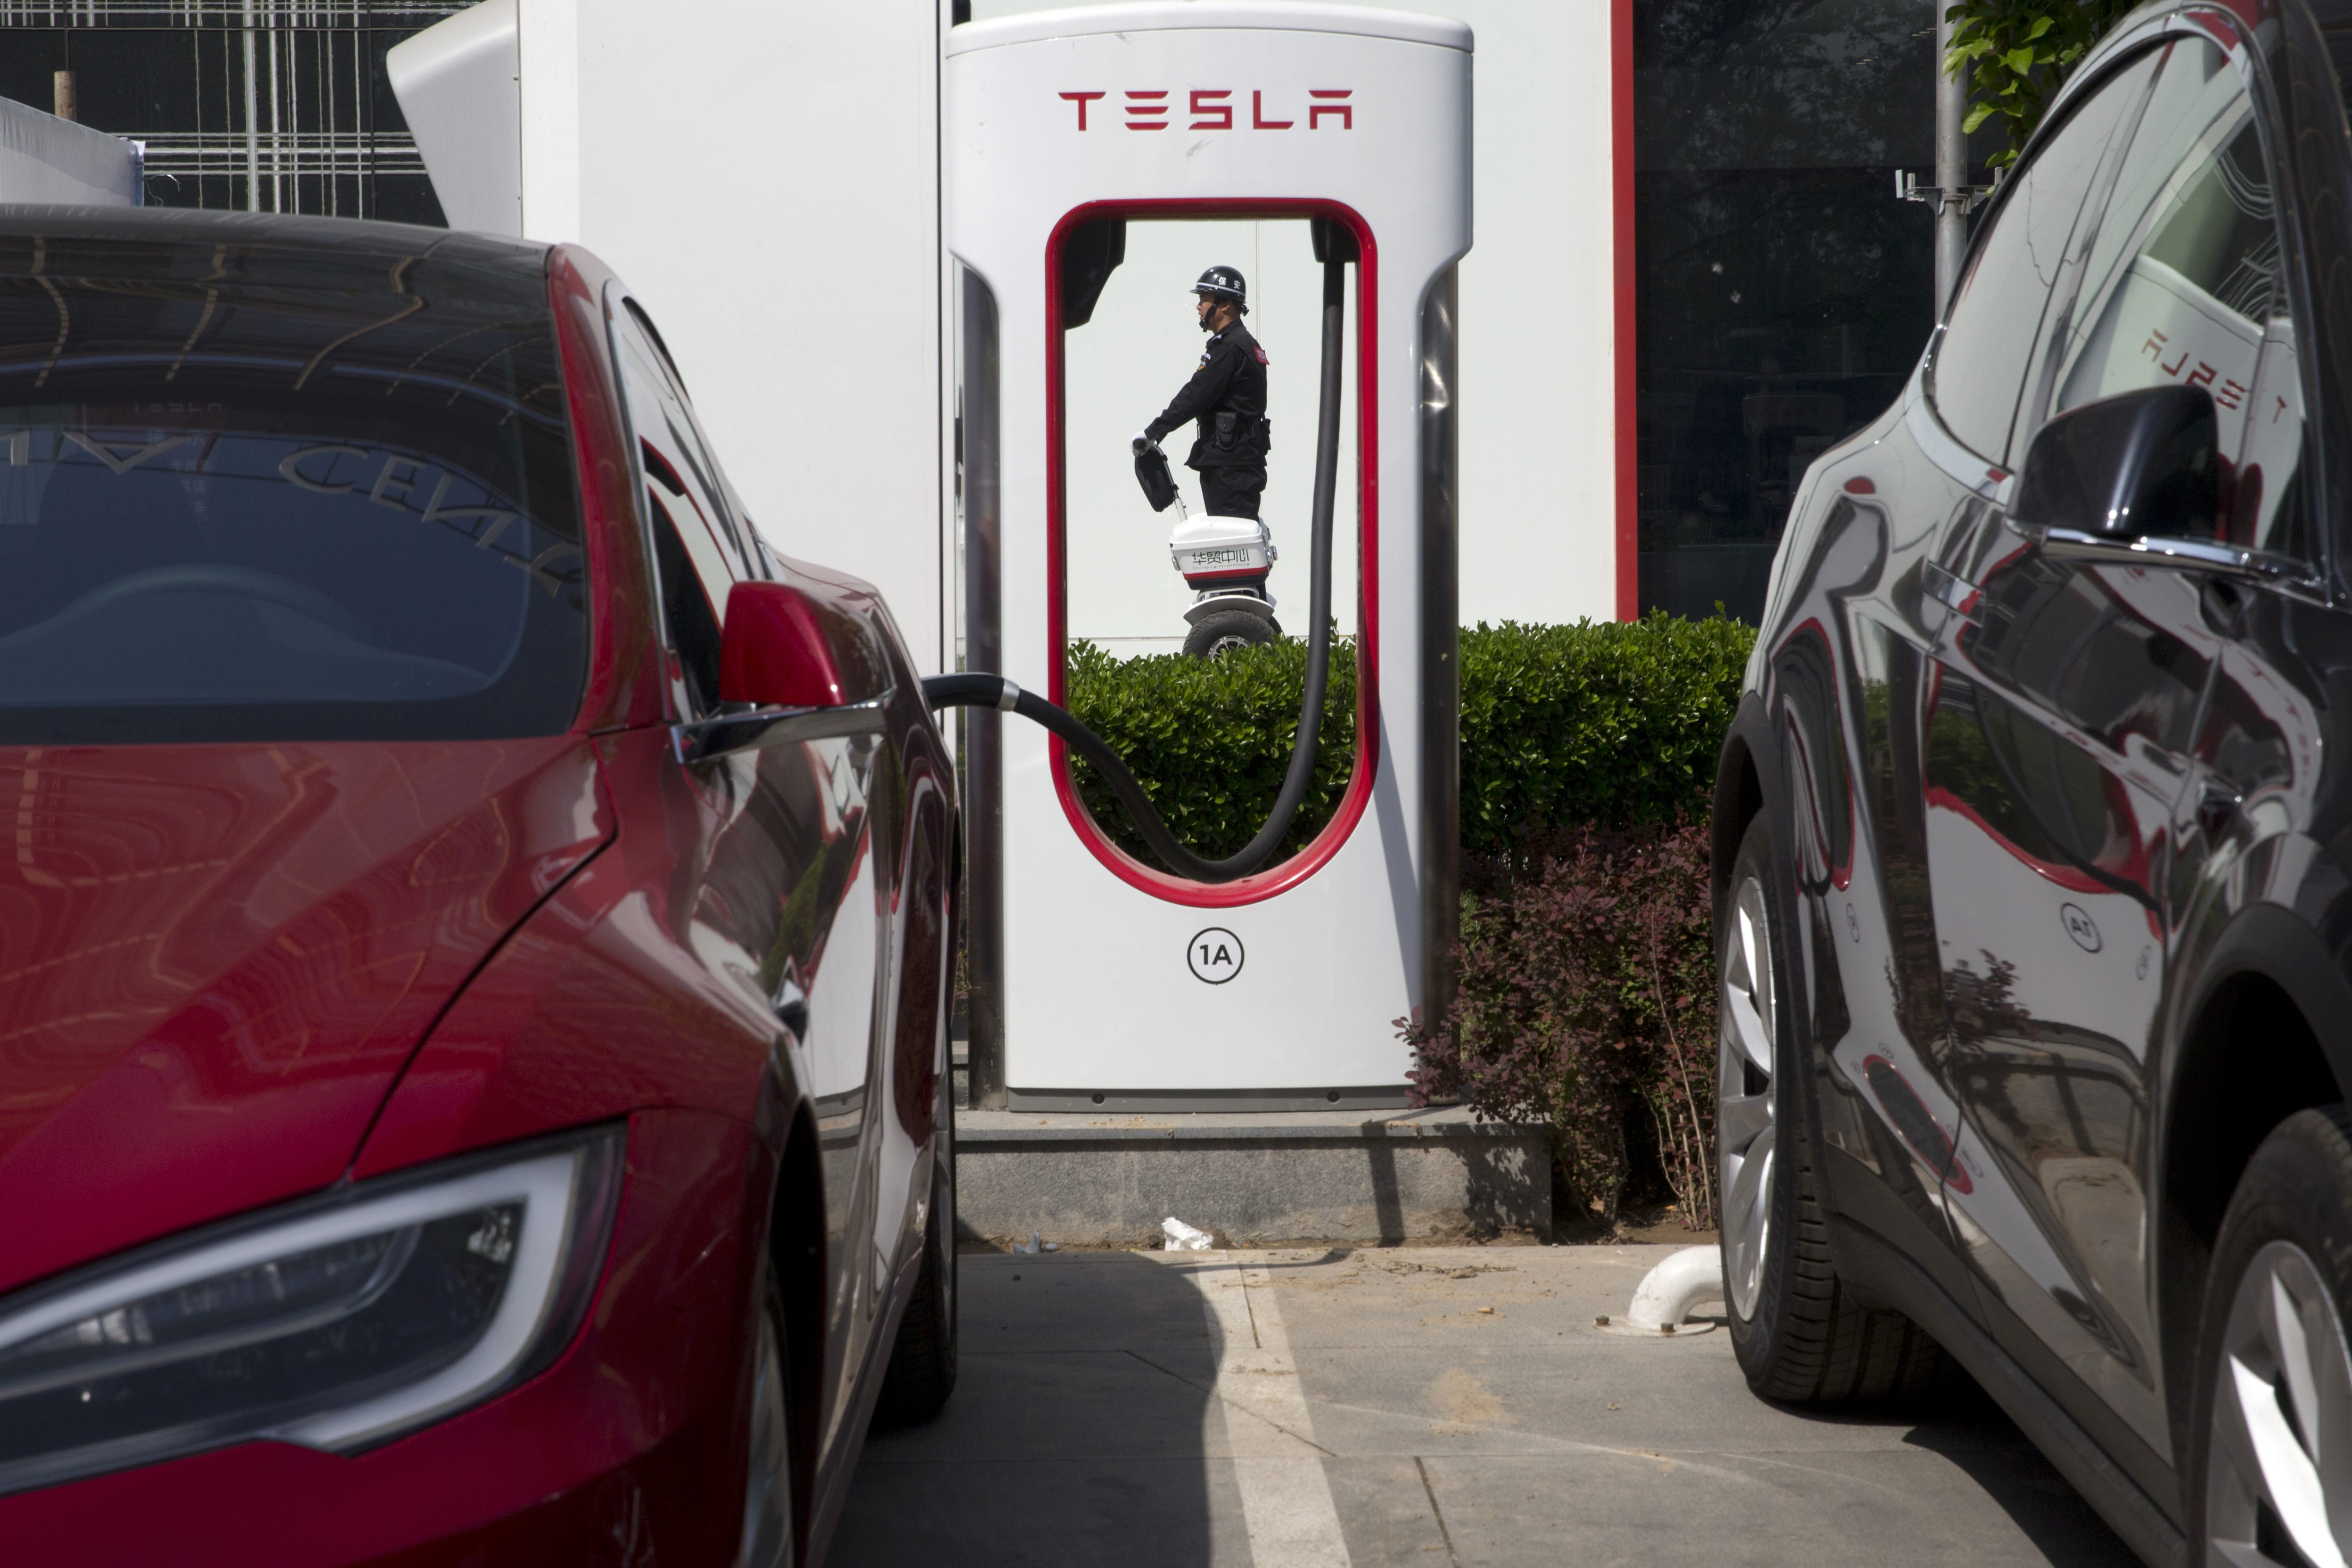 China Electric Car Dreams-1 In this Friday, April 14, 2017 photo, a security personnel riding a motorized platform moves past an electric vehicle charging station in Beijing, China. Automakers face a conflict in China's huge but crowded market: Regulators are pushing them to sell electric cars, but buyers want gasoline-hungry SUVs. (AP Photo/Ng Han Guan)